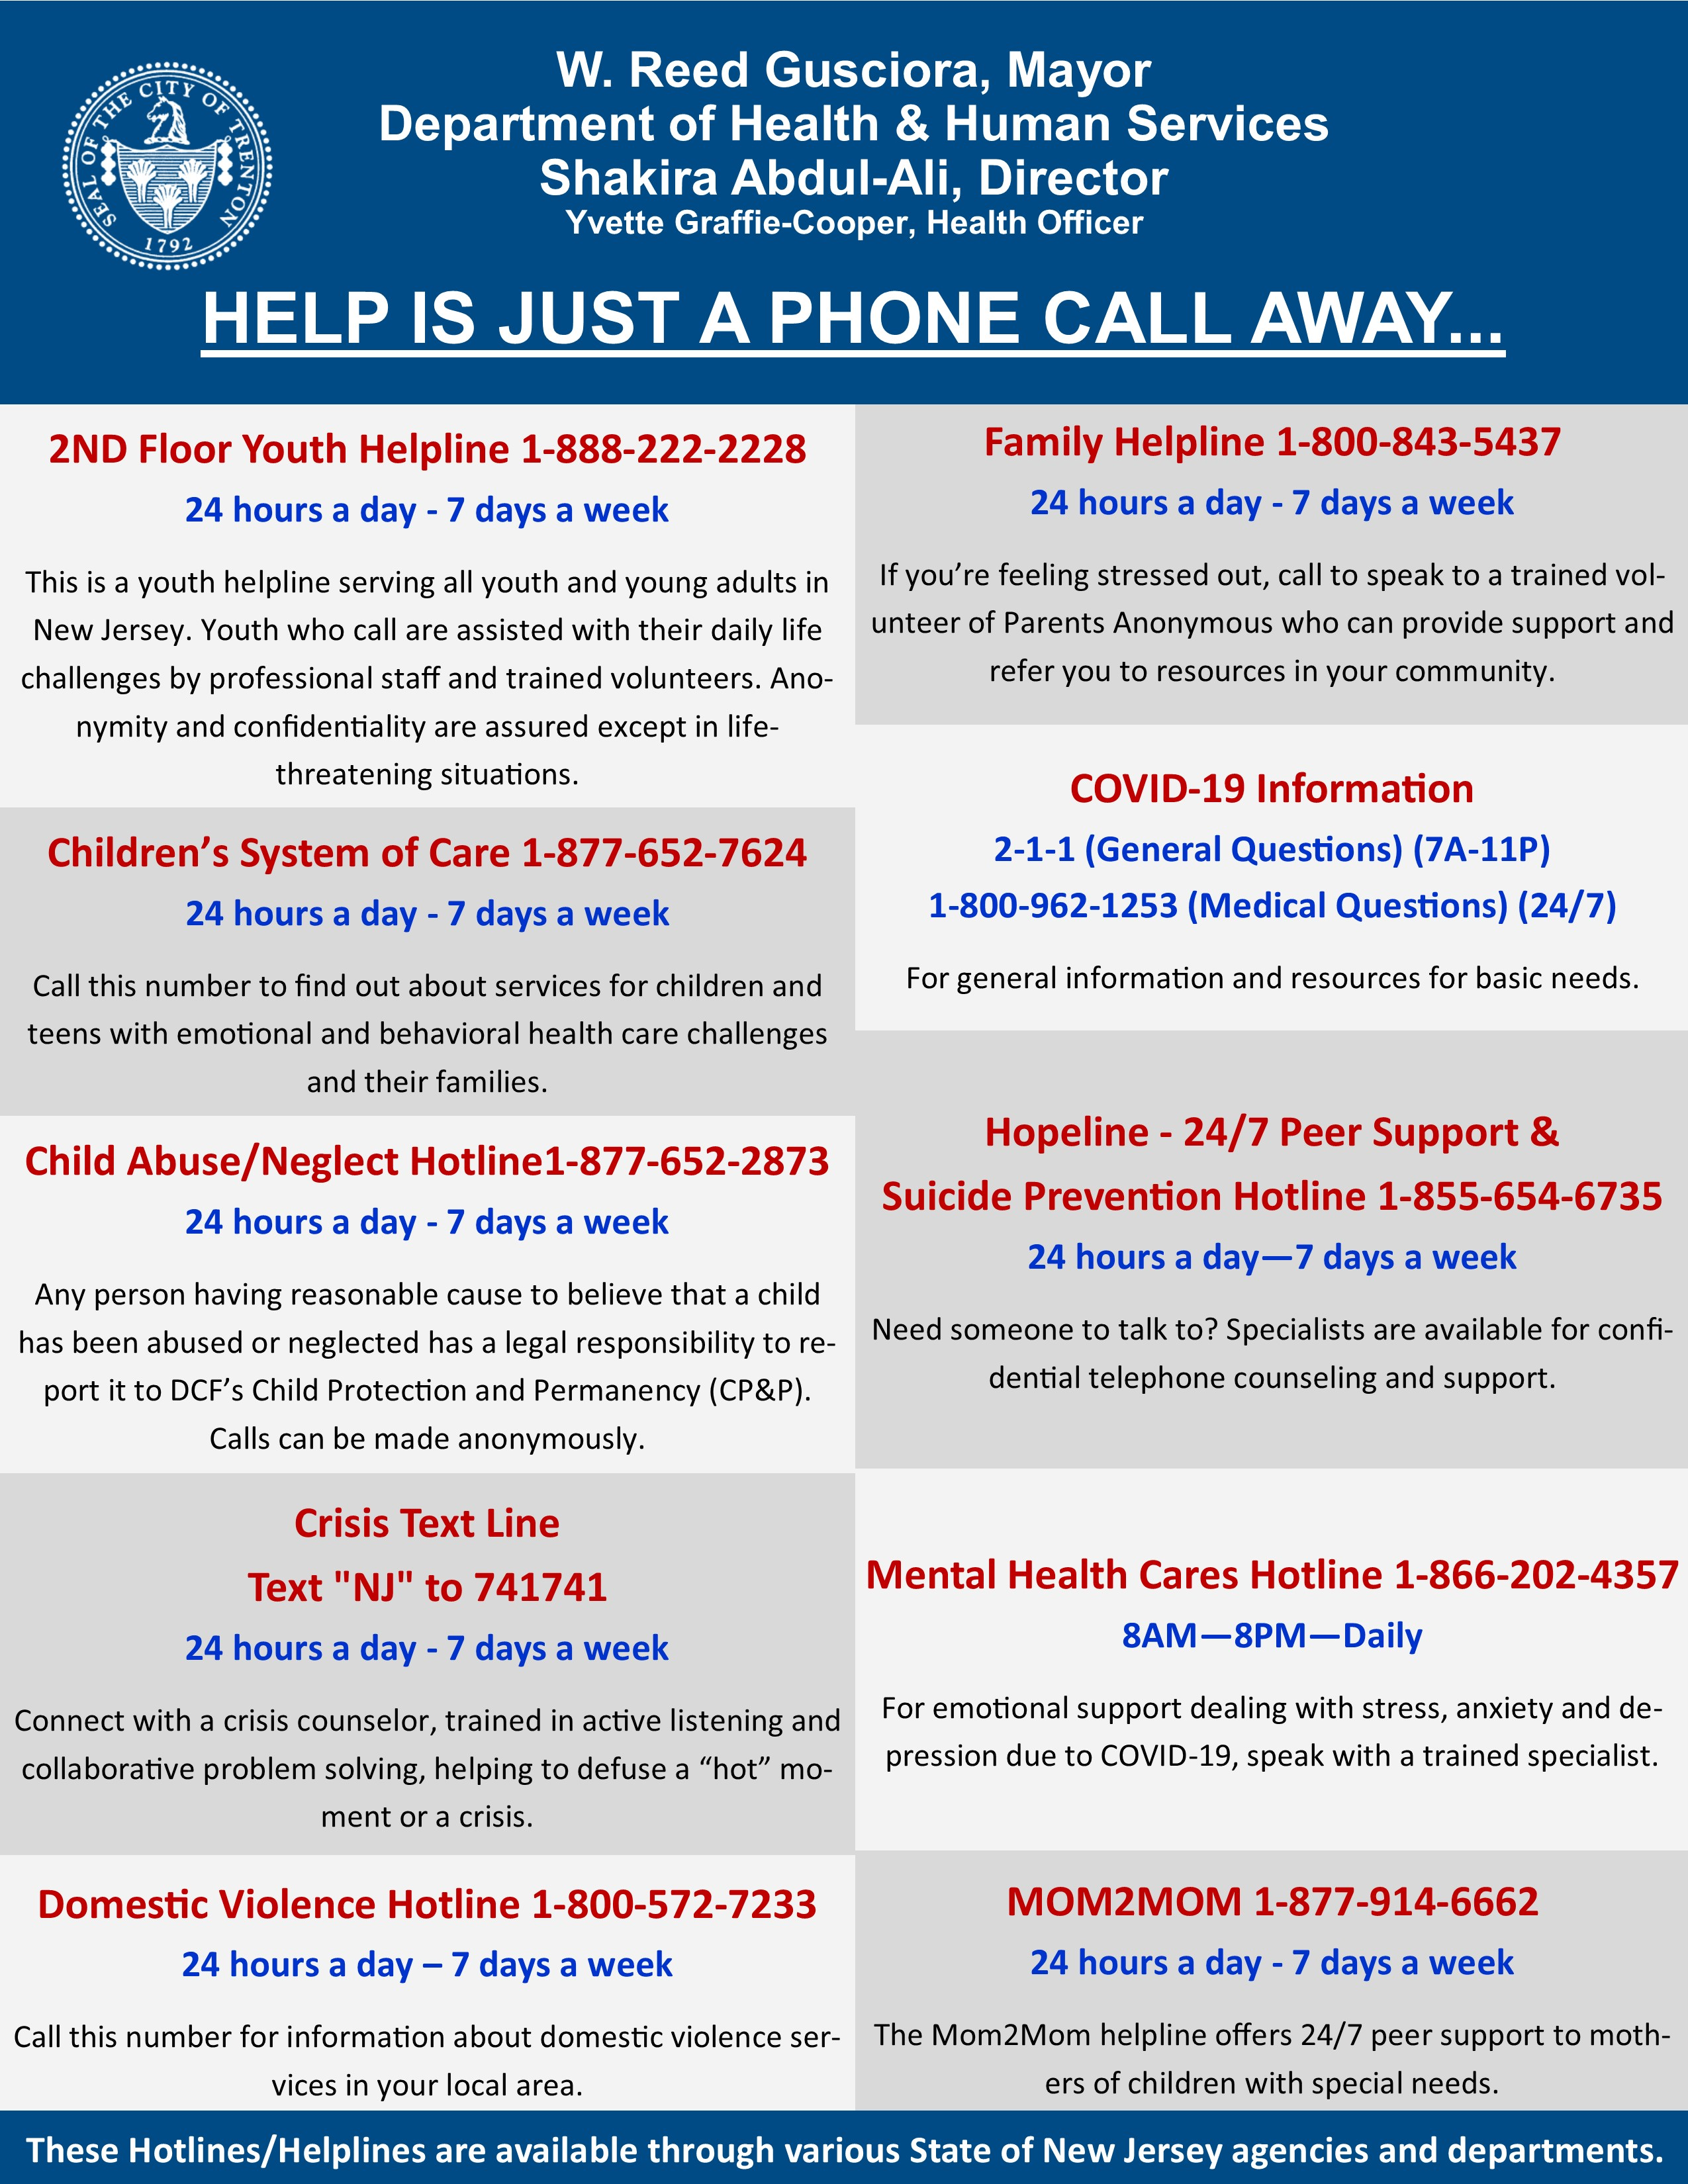 Help is Just a Phone Call Away